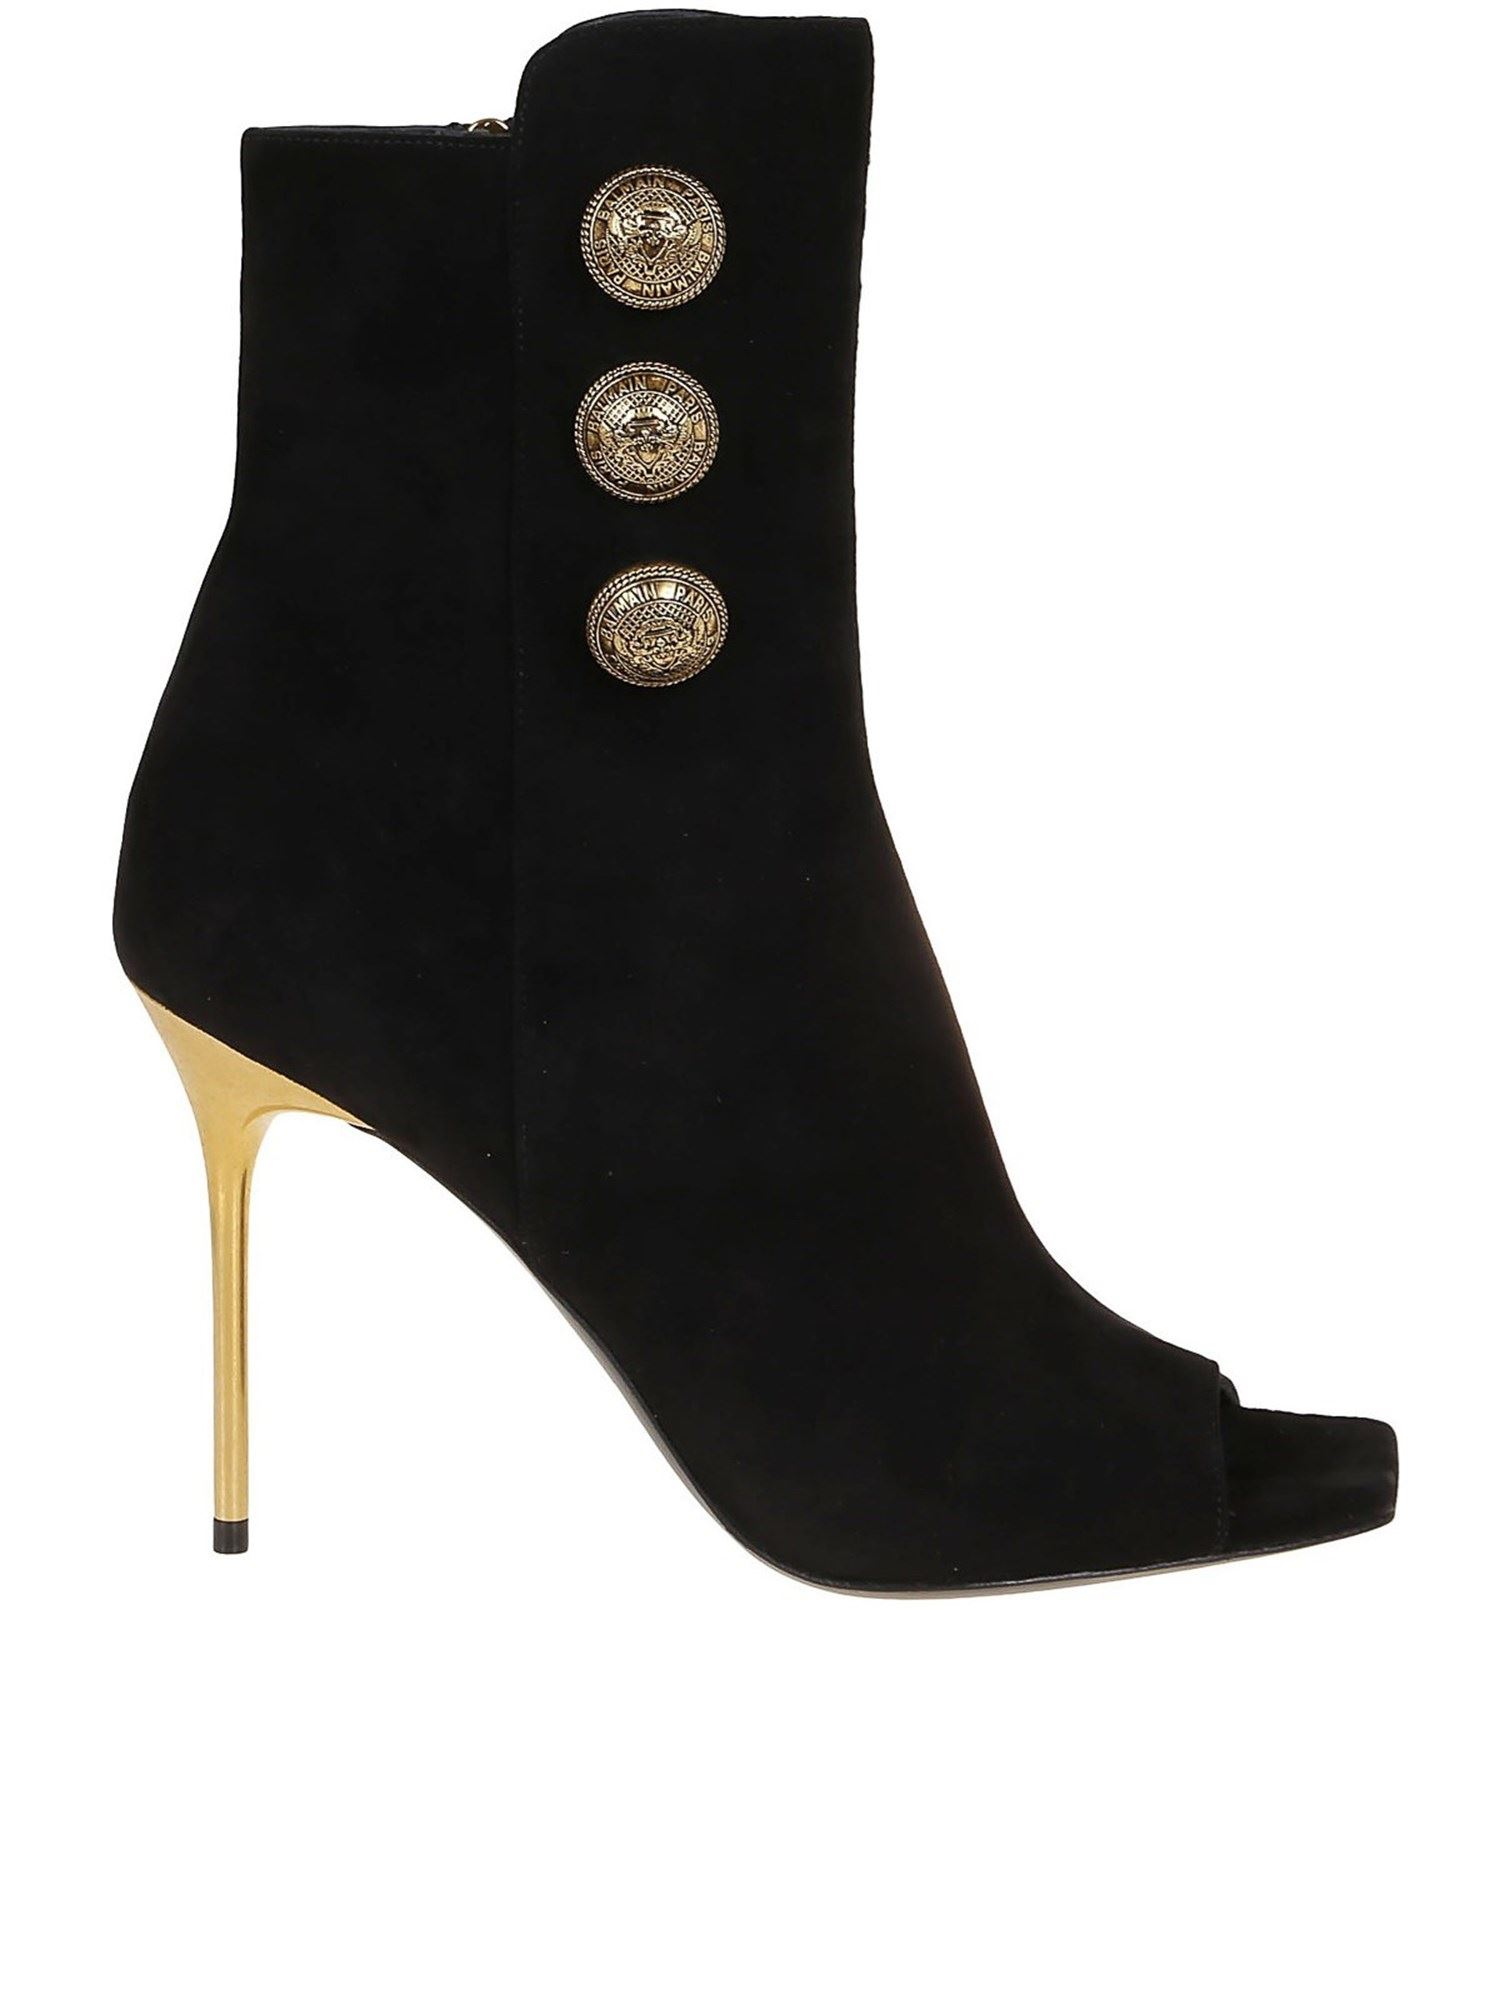 BALMAIN ROMA OPEN TOE BOOTIES IN BLACK